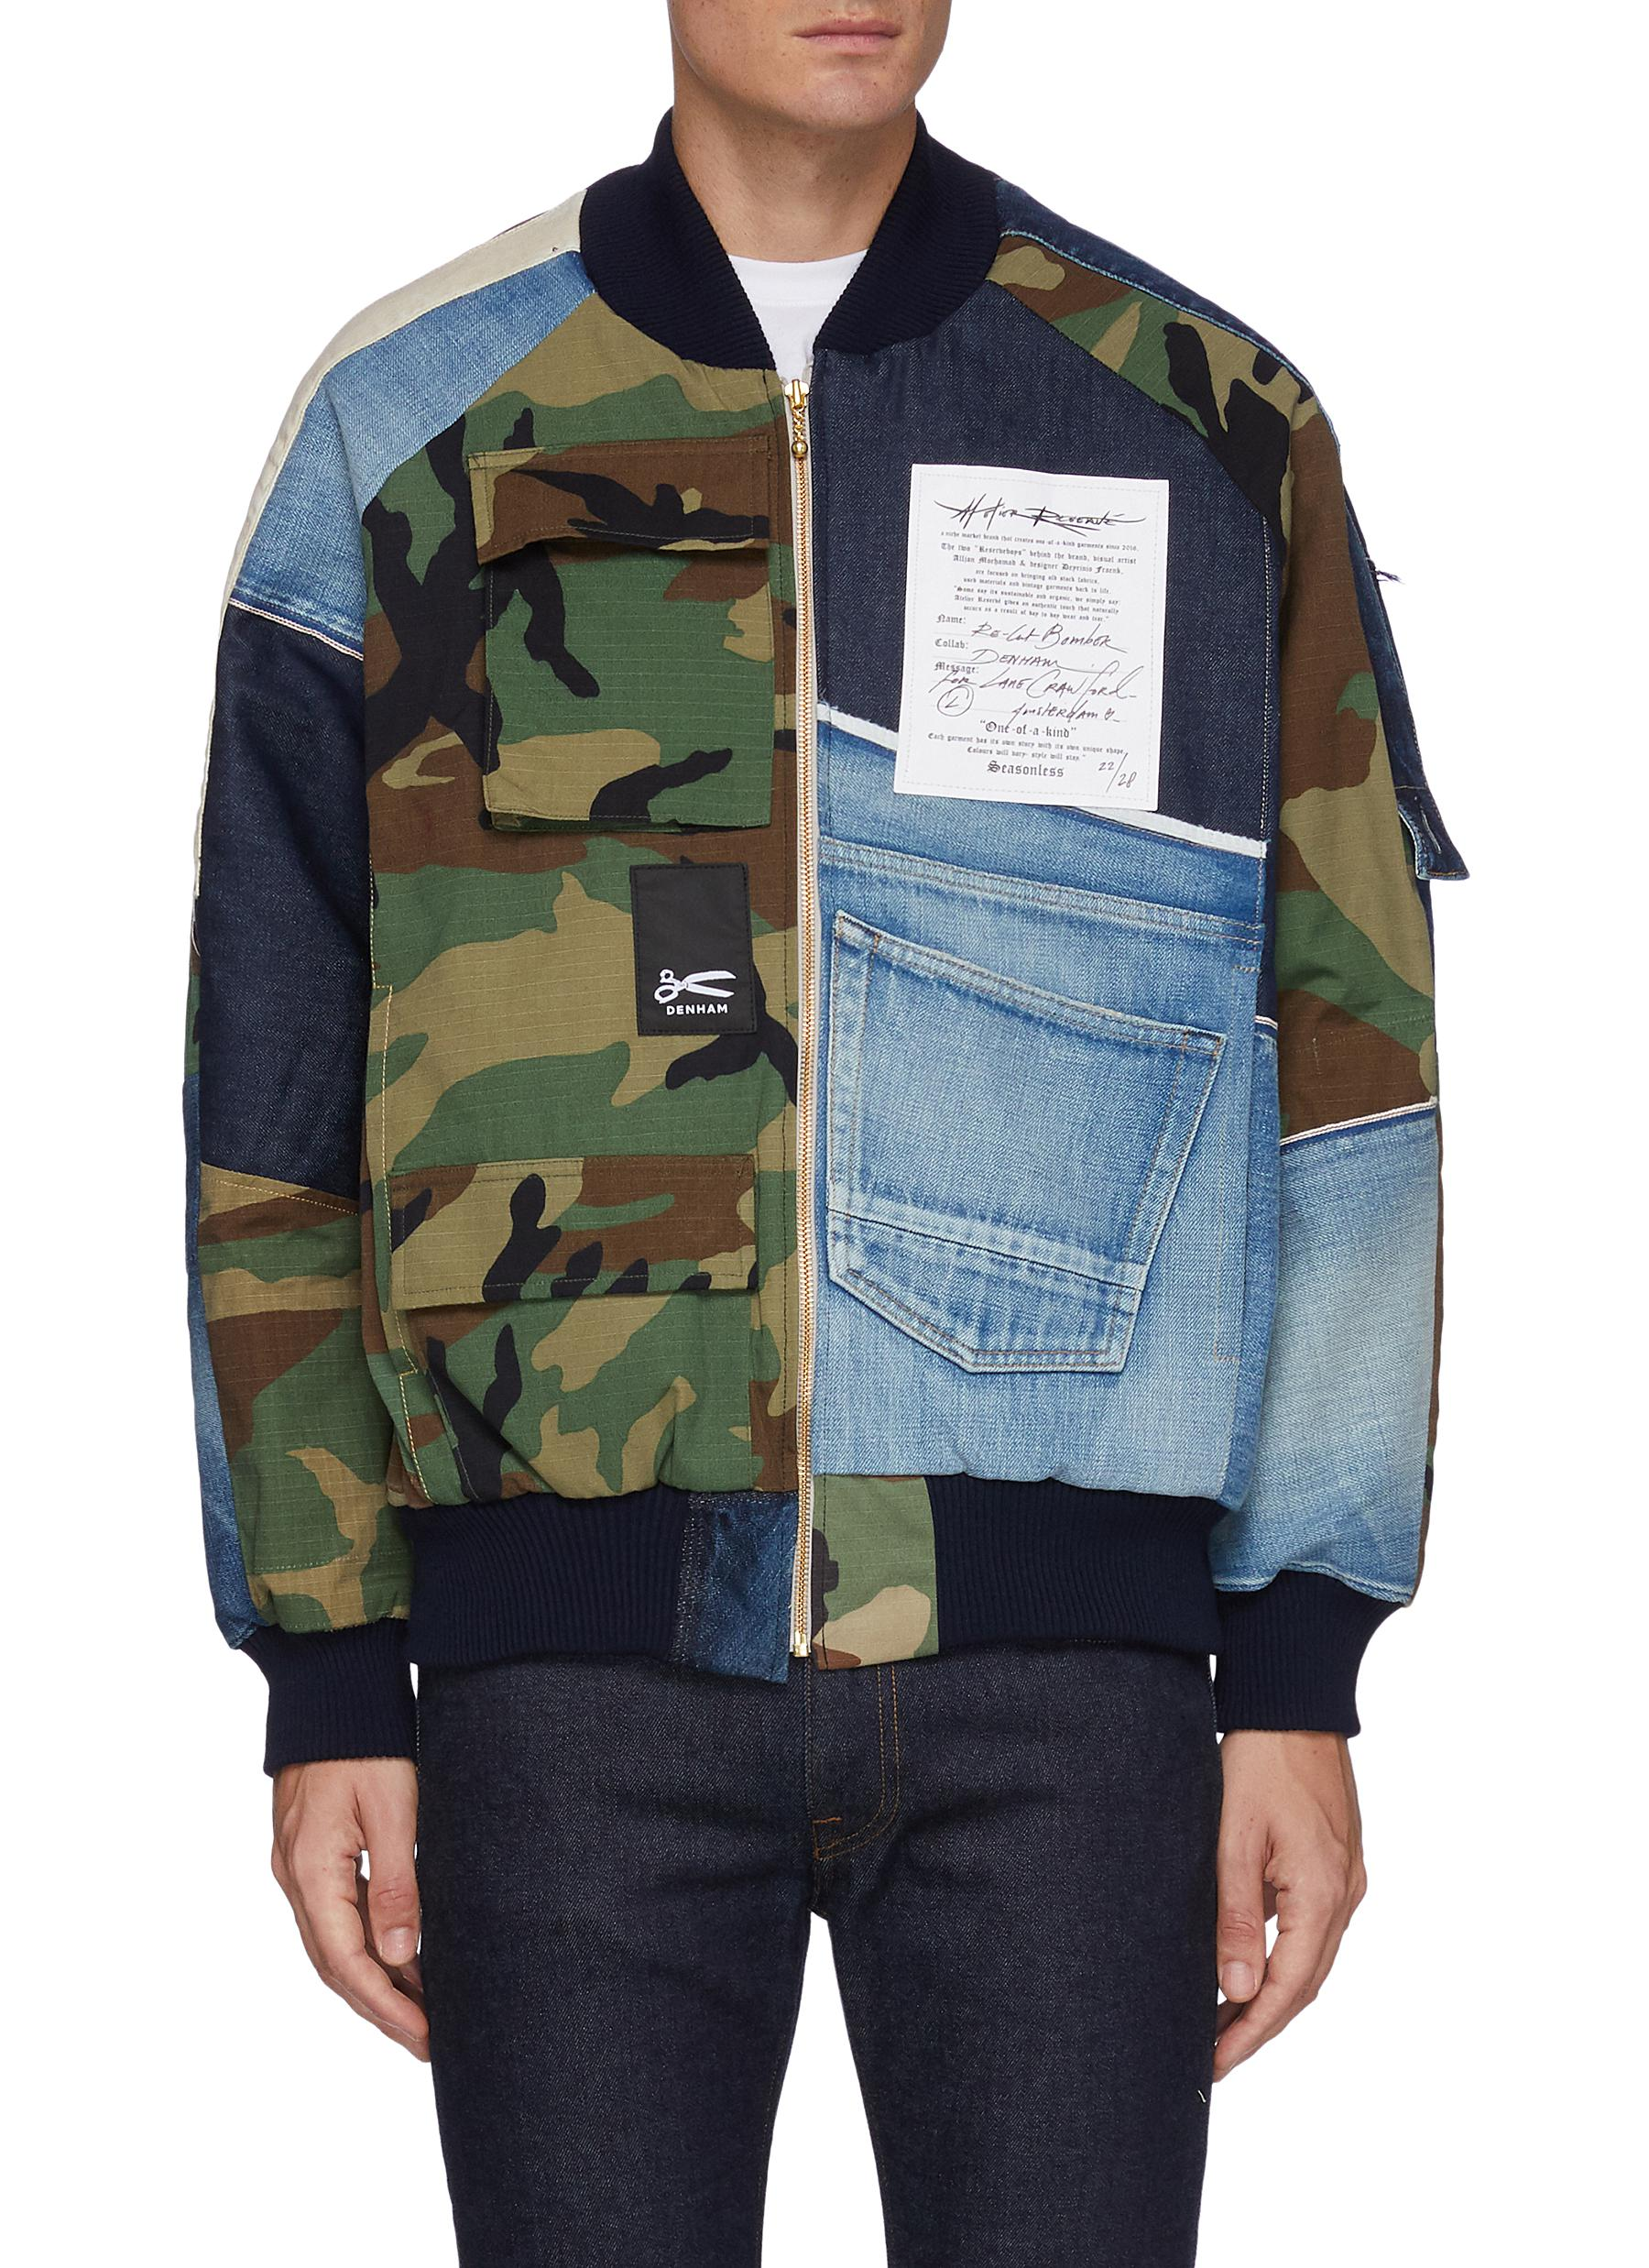 x Lane Crawford Selvedge Jeans Camouflage Patchwork Cotton Bomber Jacket